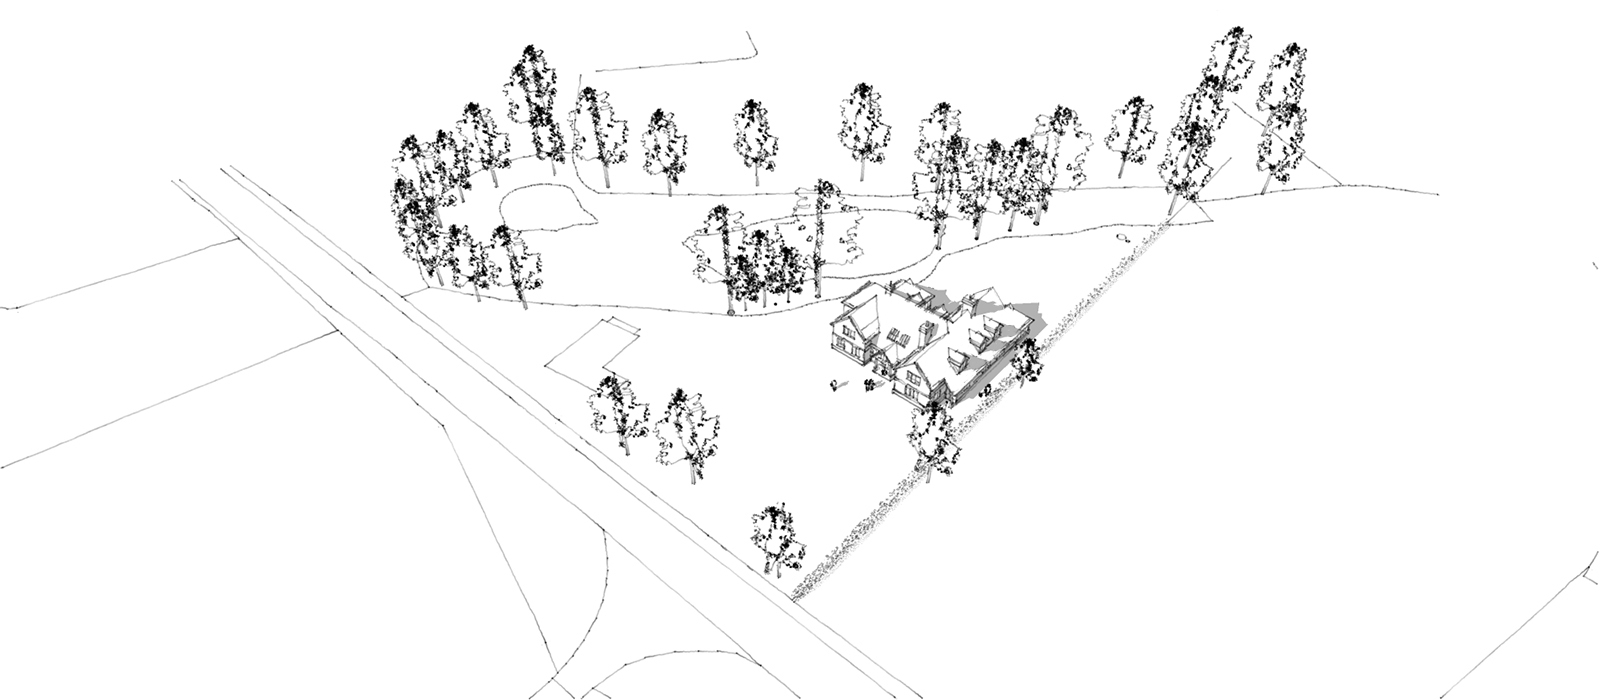 gyd-architecture | Sketch render of site